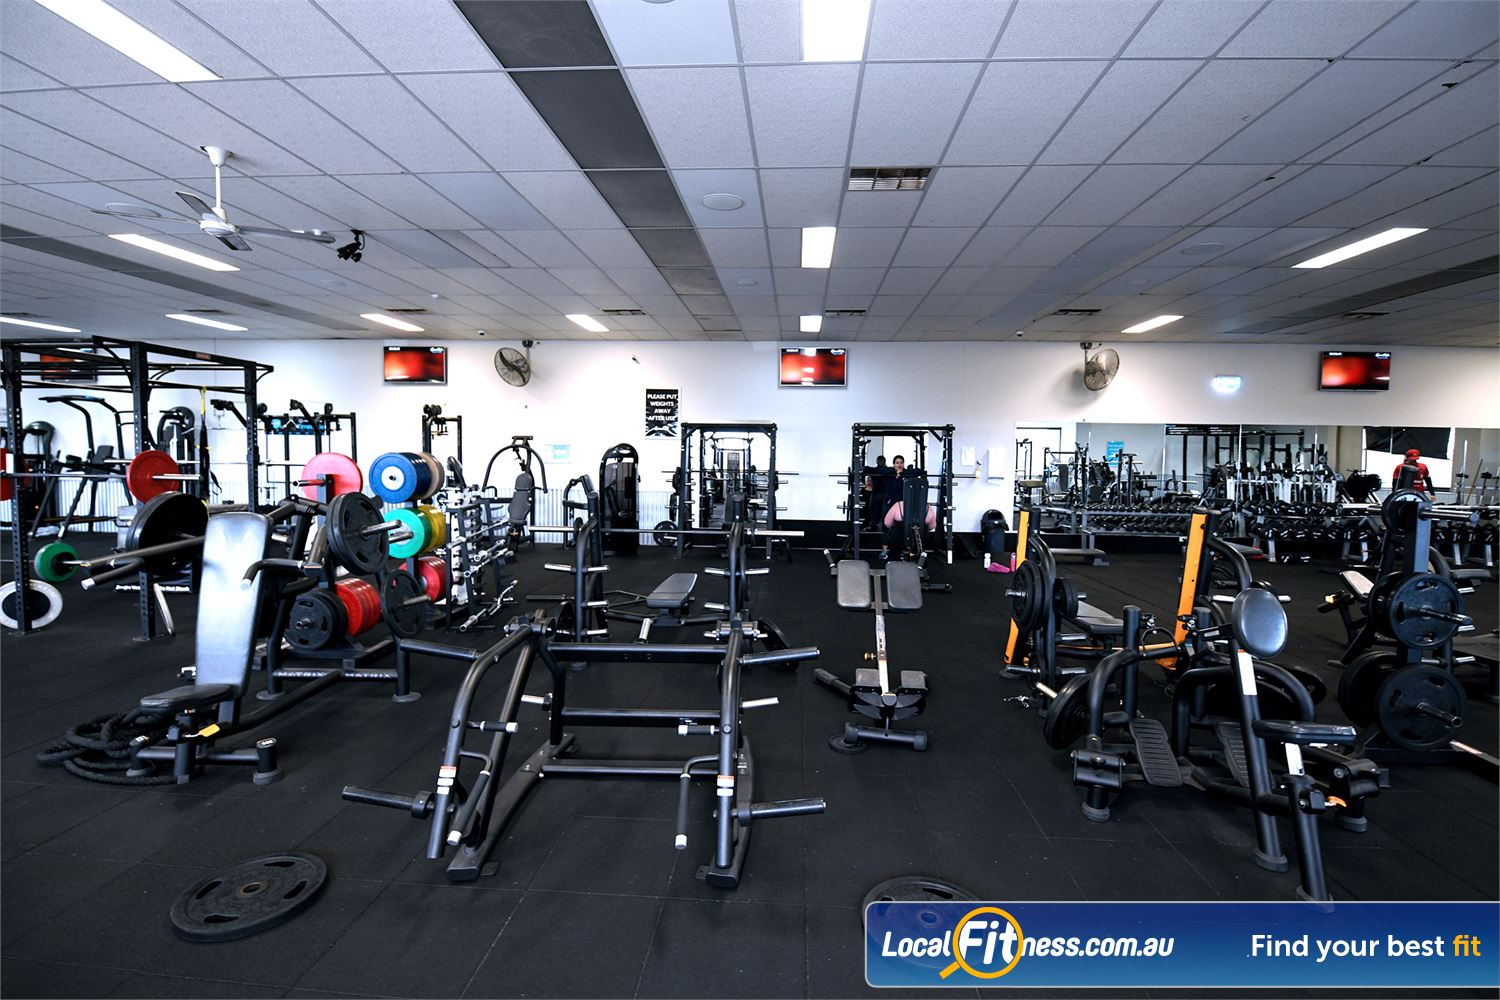 Goodlife Health Clubs Hoppers Crossing Our Hoppers Crossing gym provides state of the art equipment.